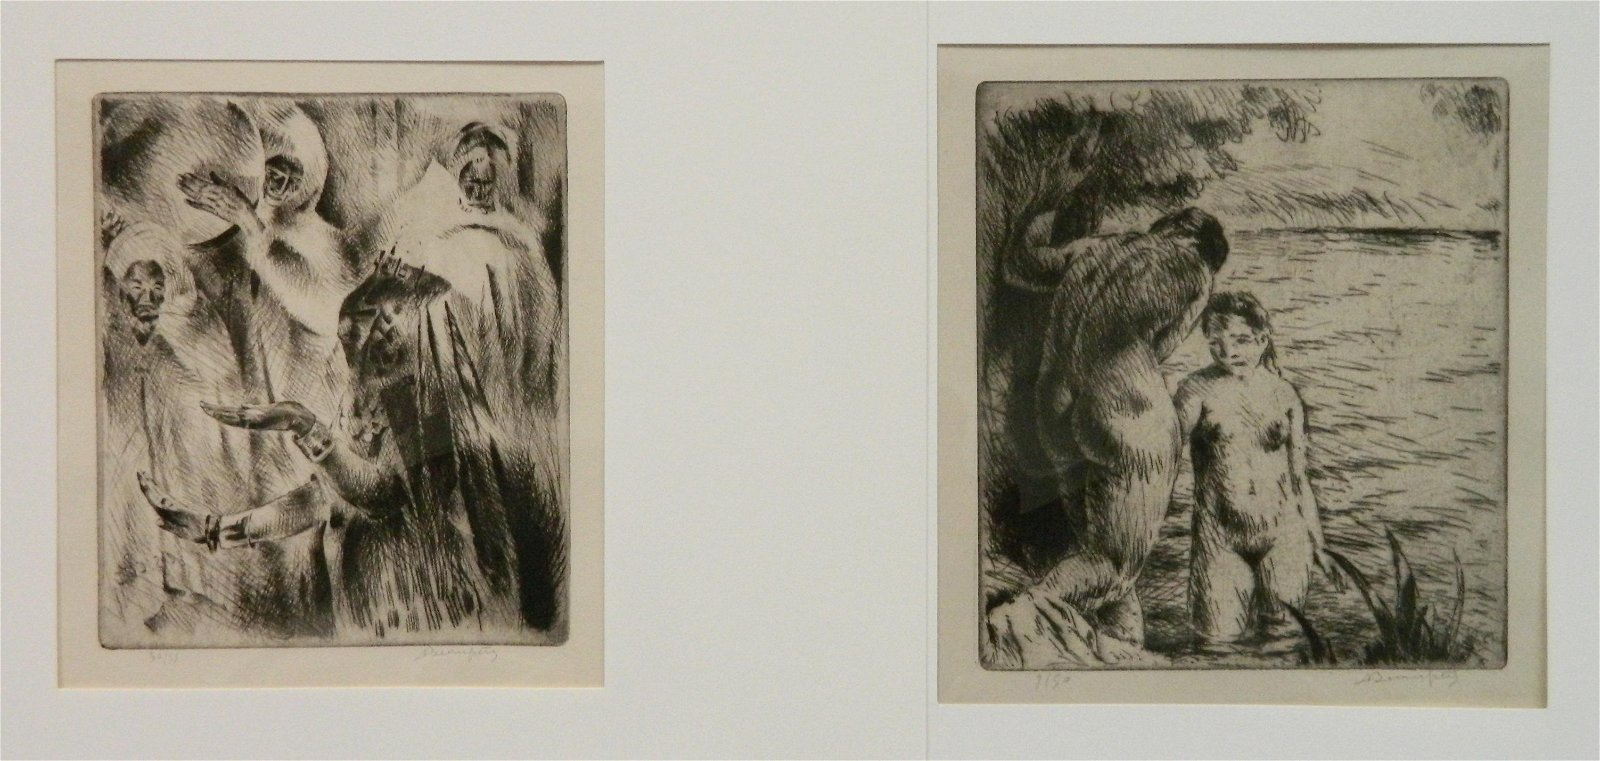 2 Adolphe Beaufrere etchings